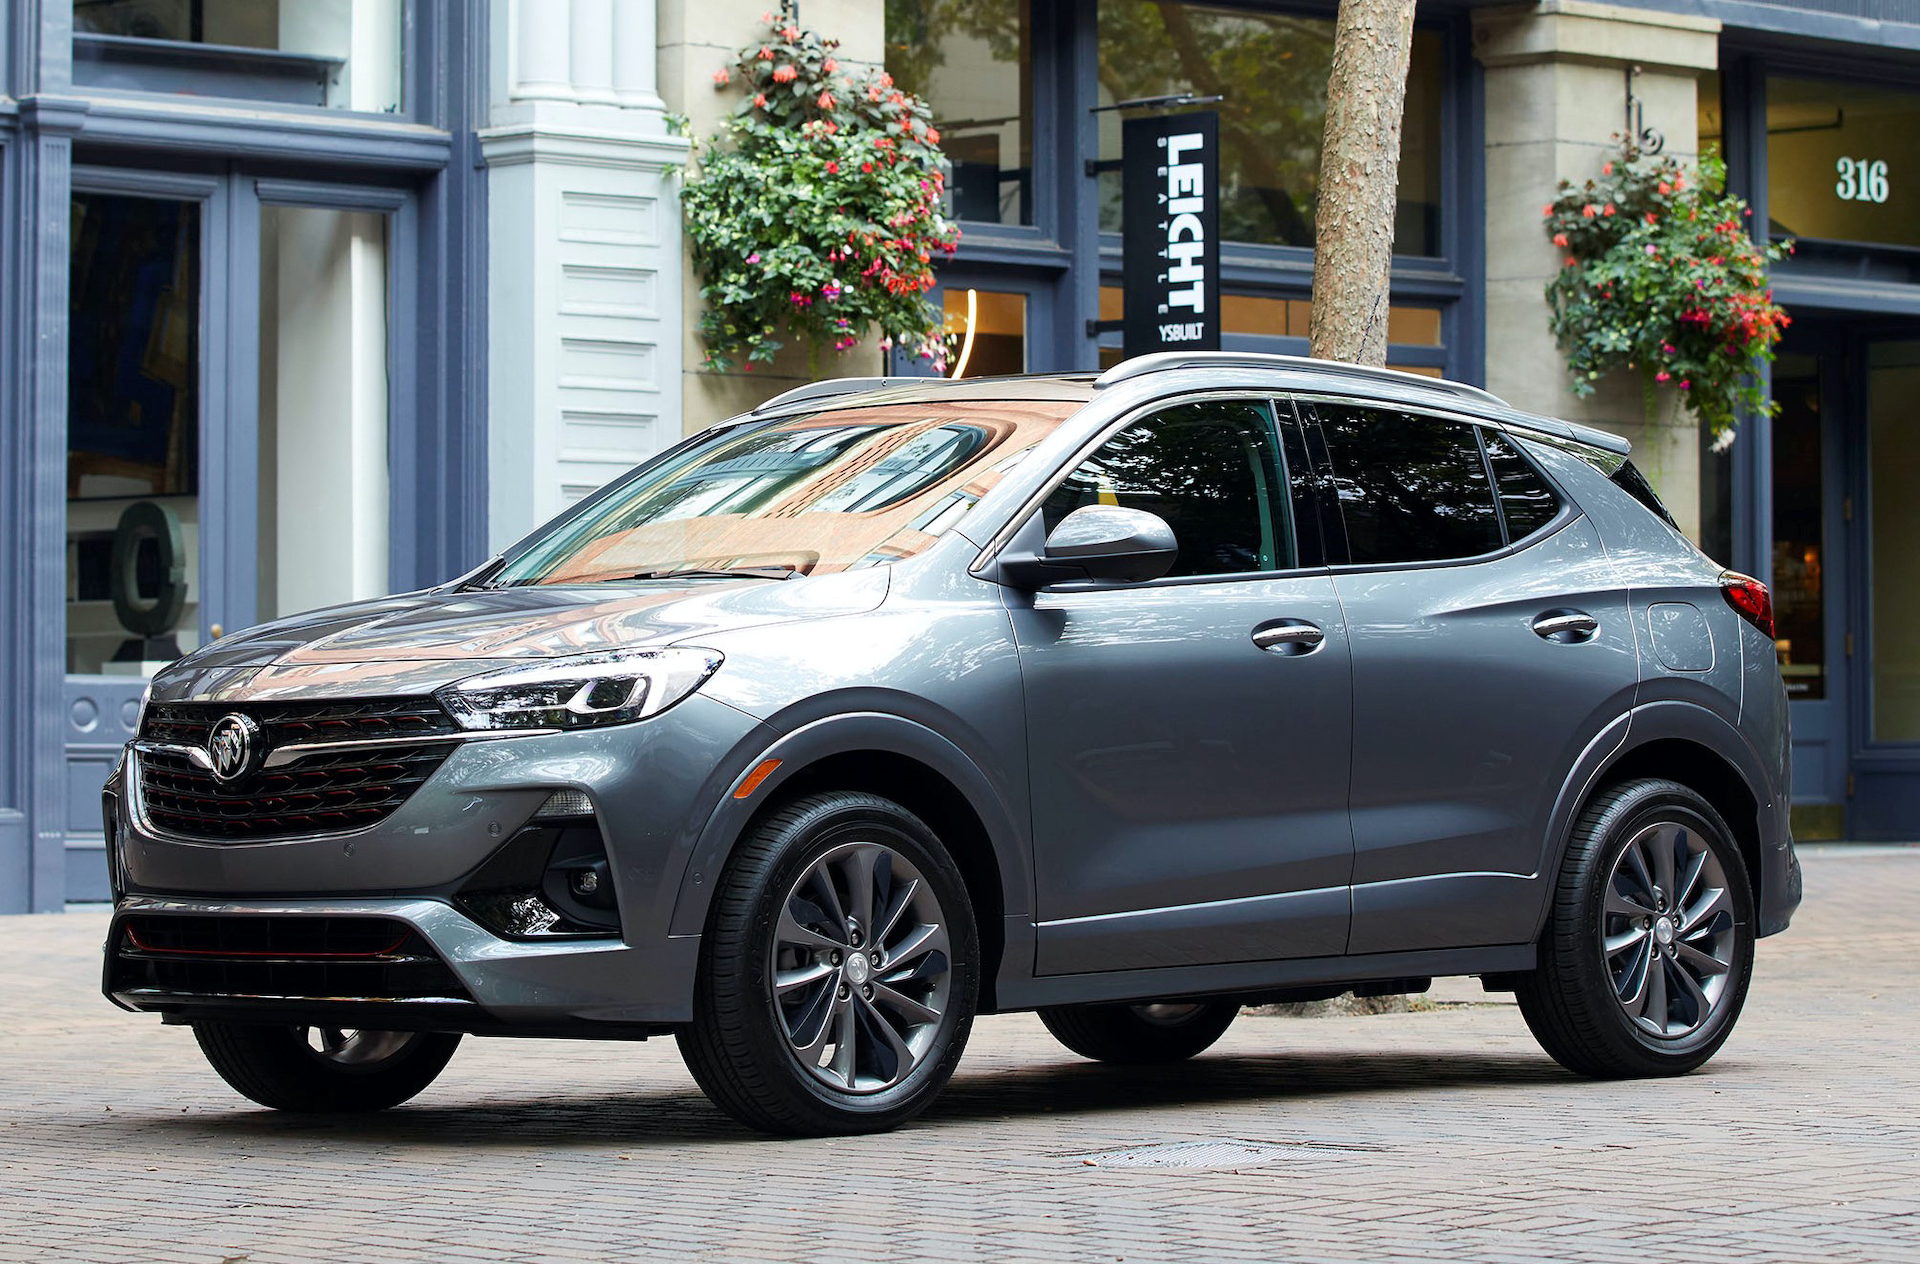 2021 Buick Encore Review, Ratings, Specs, Prices, And Photos 2021 Buick Encore Gx Build, Curb Weight, Cargo Space